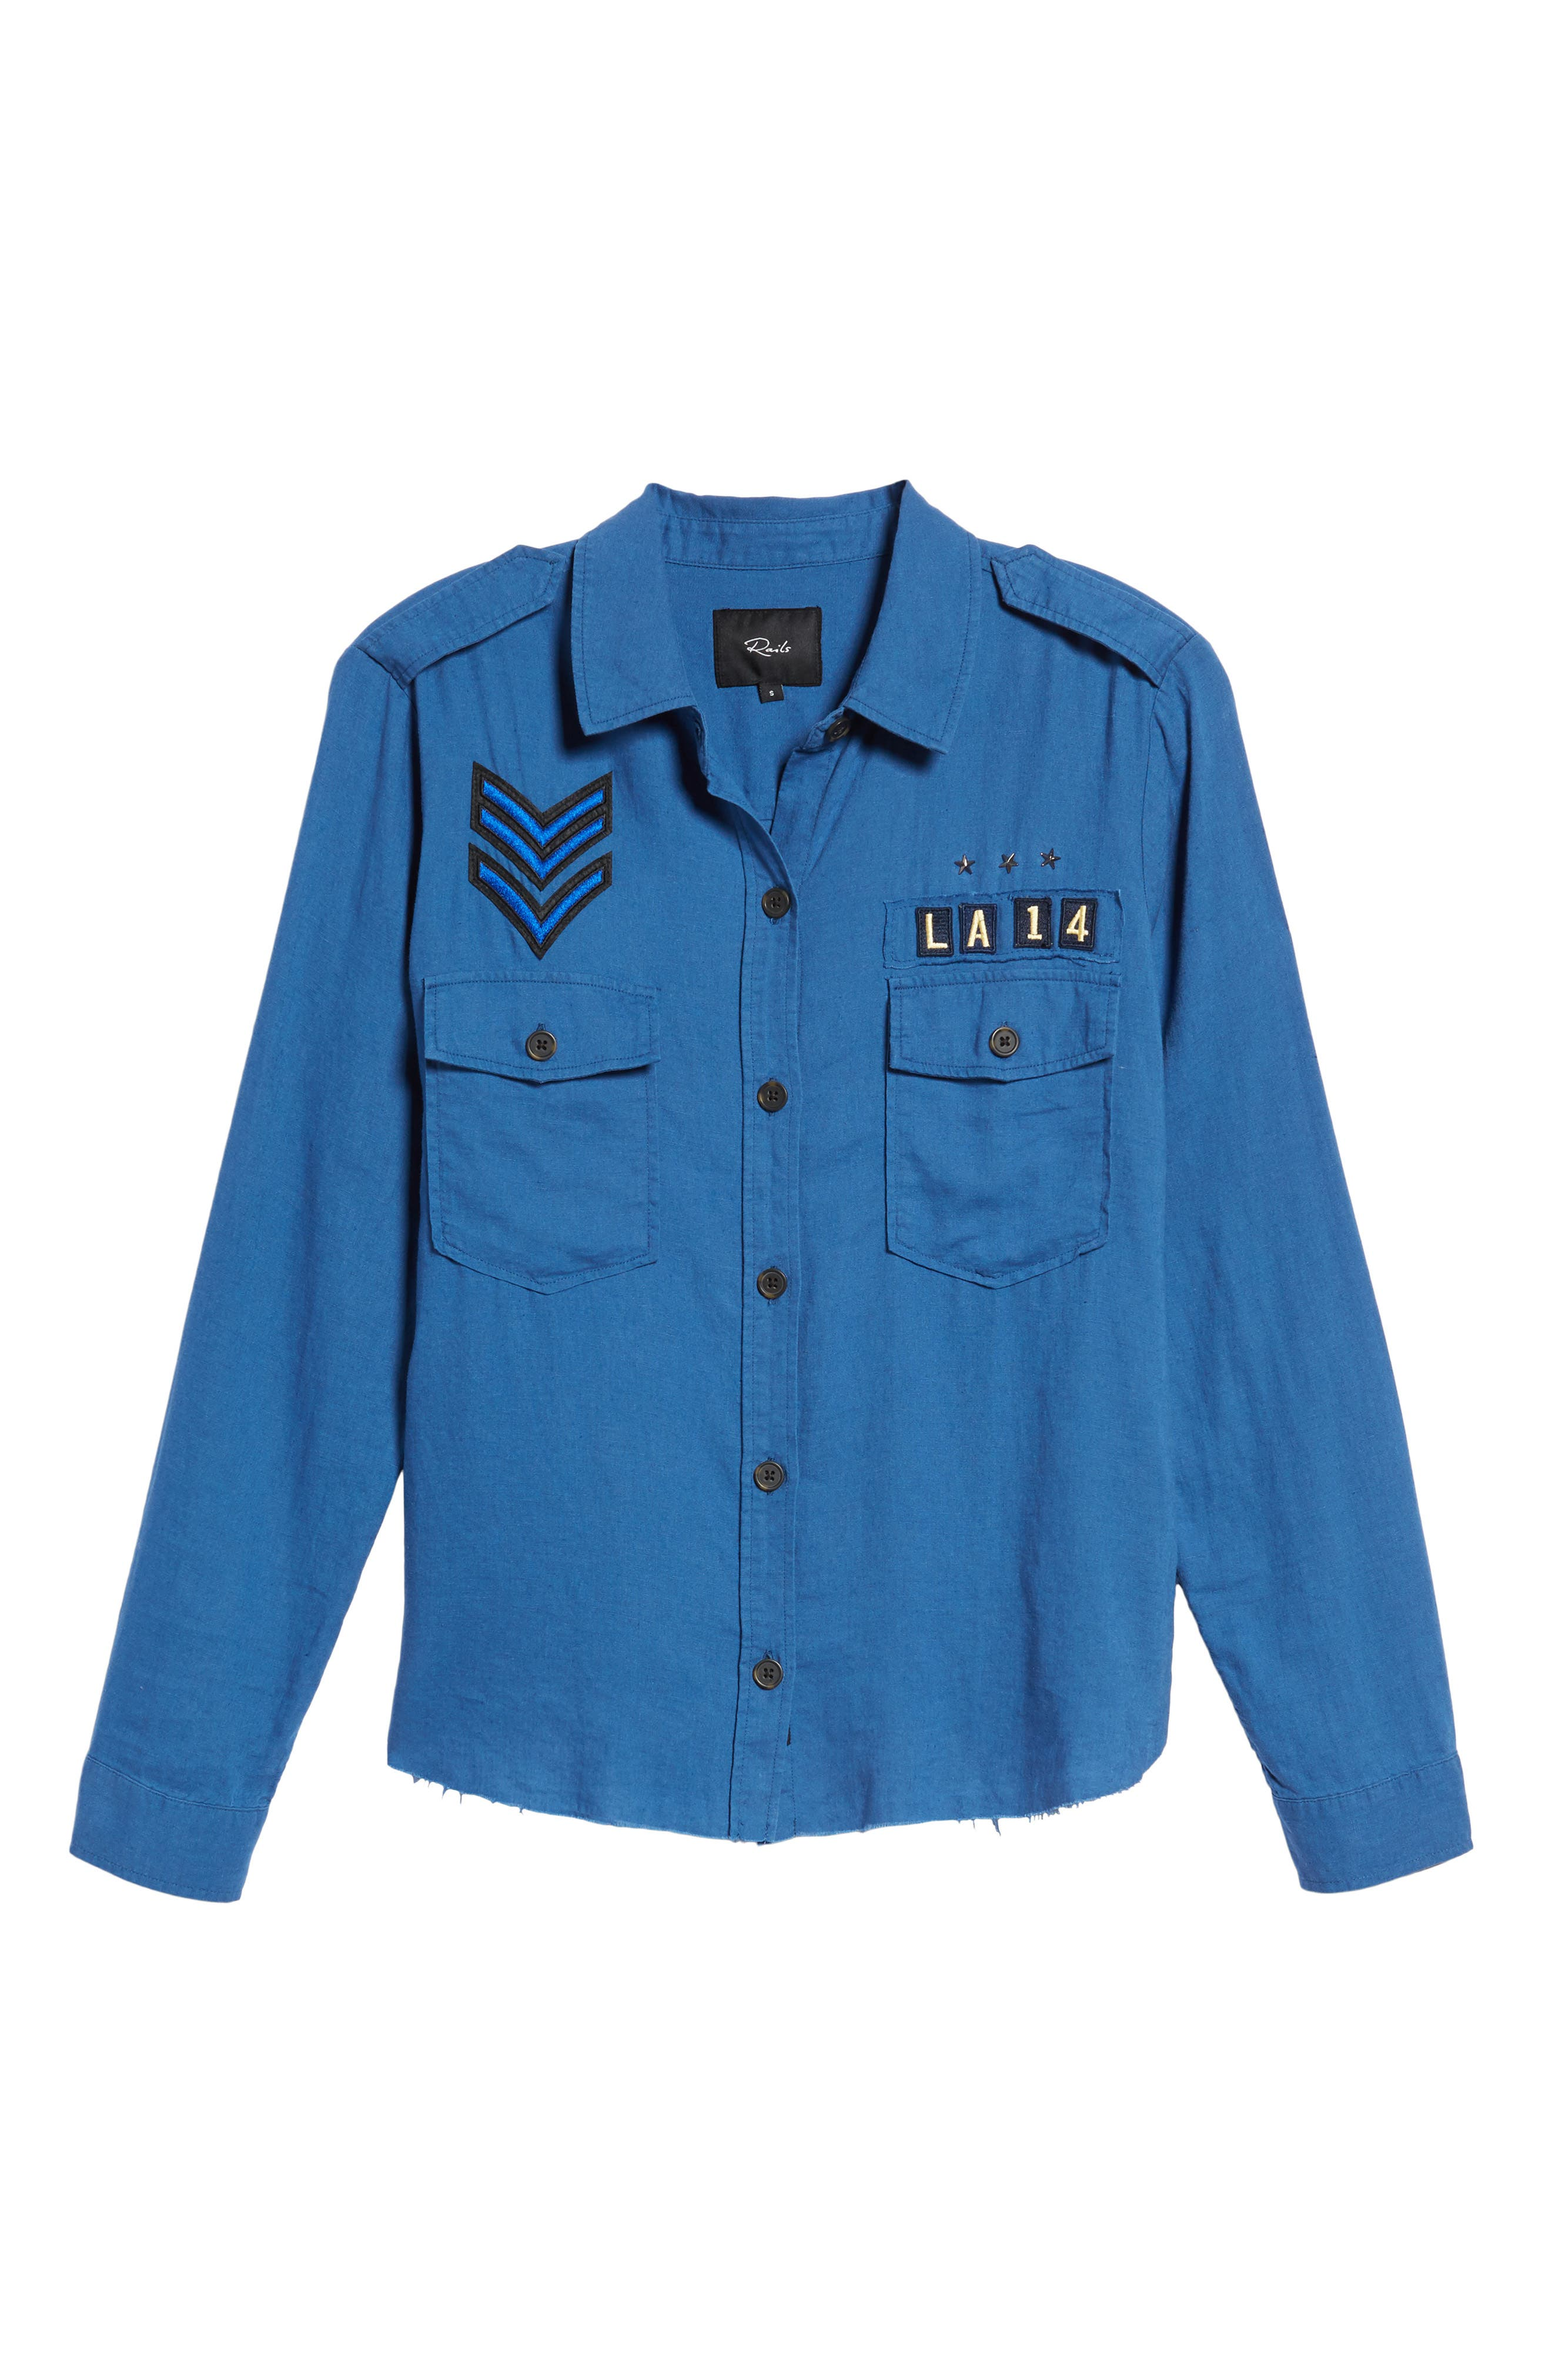 Banks Military Patch Shirt,                             Alternate thumbnail 6, color,                             439